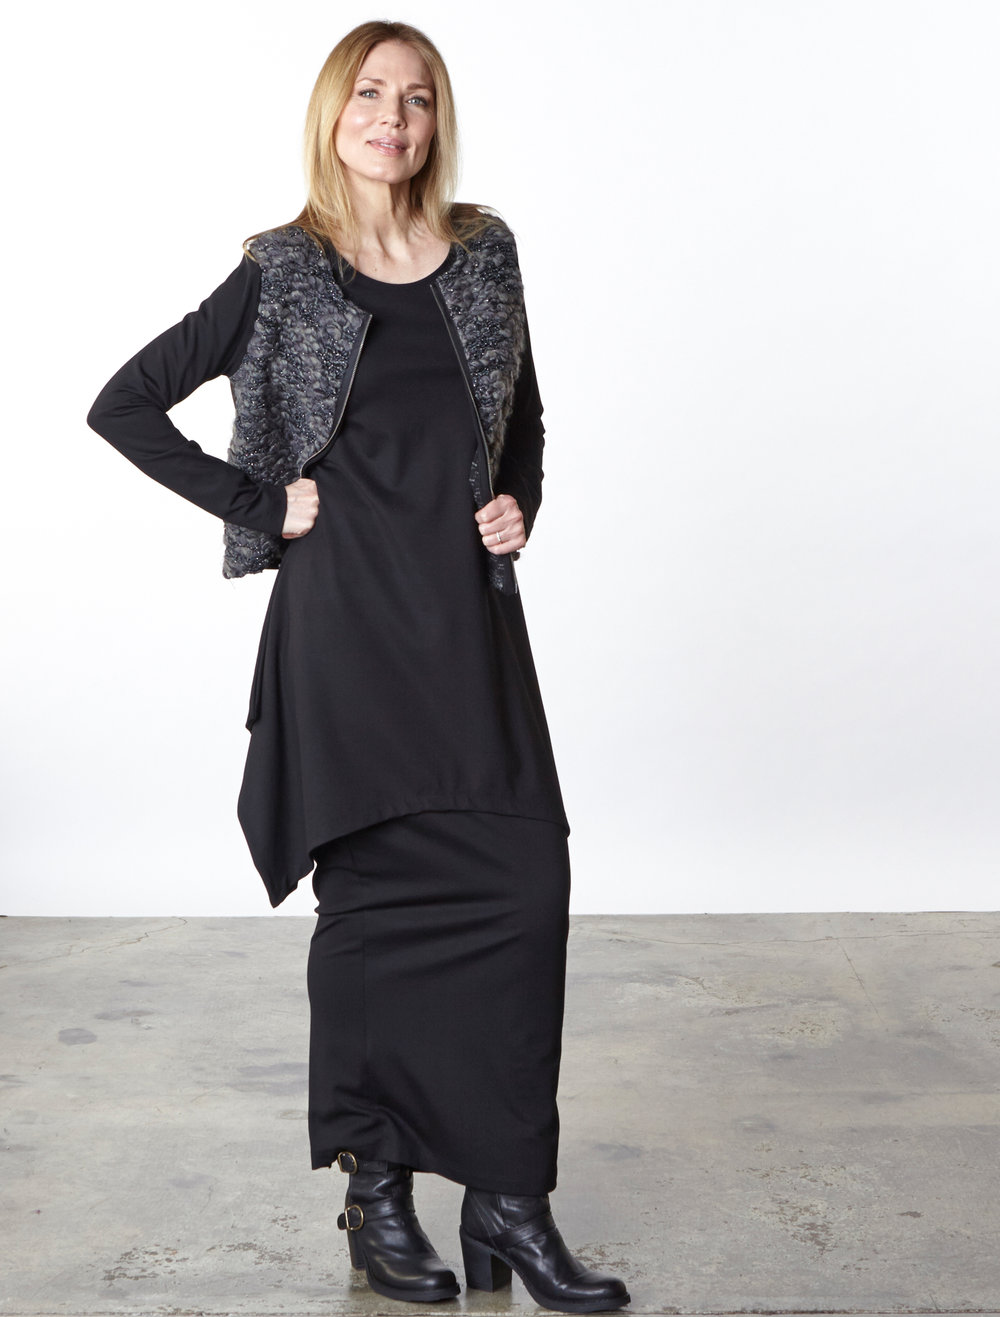 Betz Cardigan in Ready for the Faroes, Chase Tunic, Slim Skirt in Black Modal Ponti